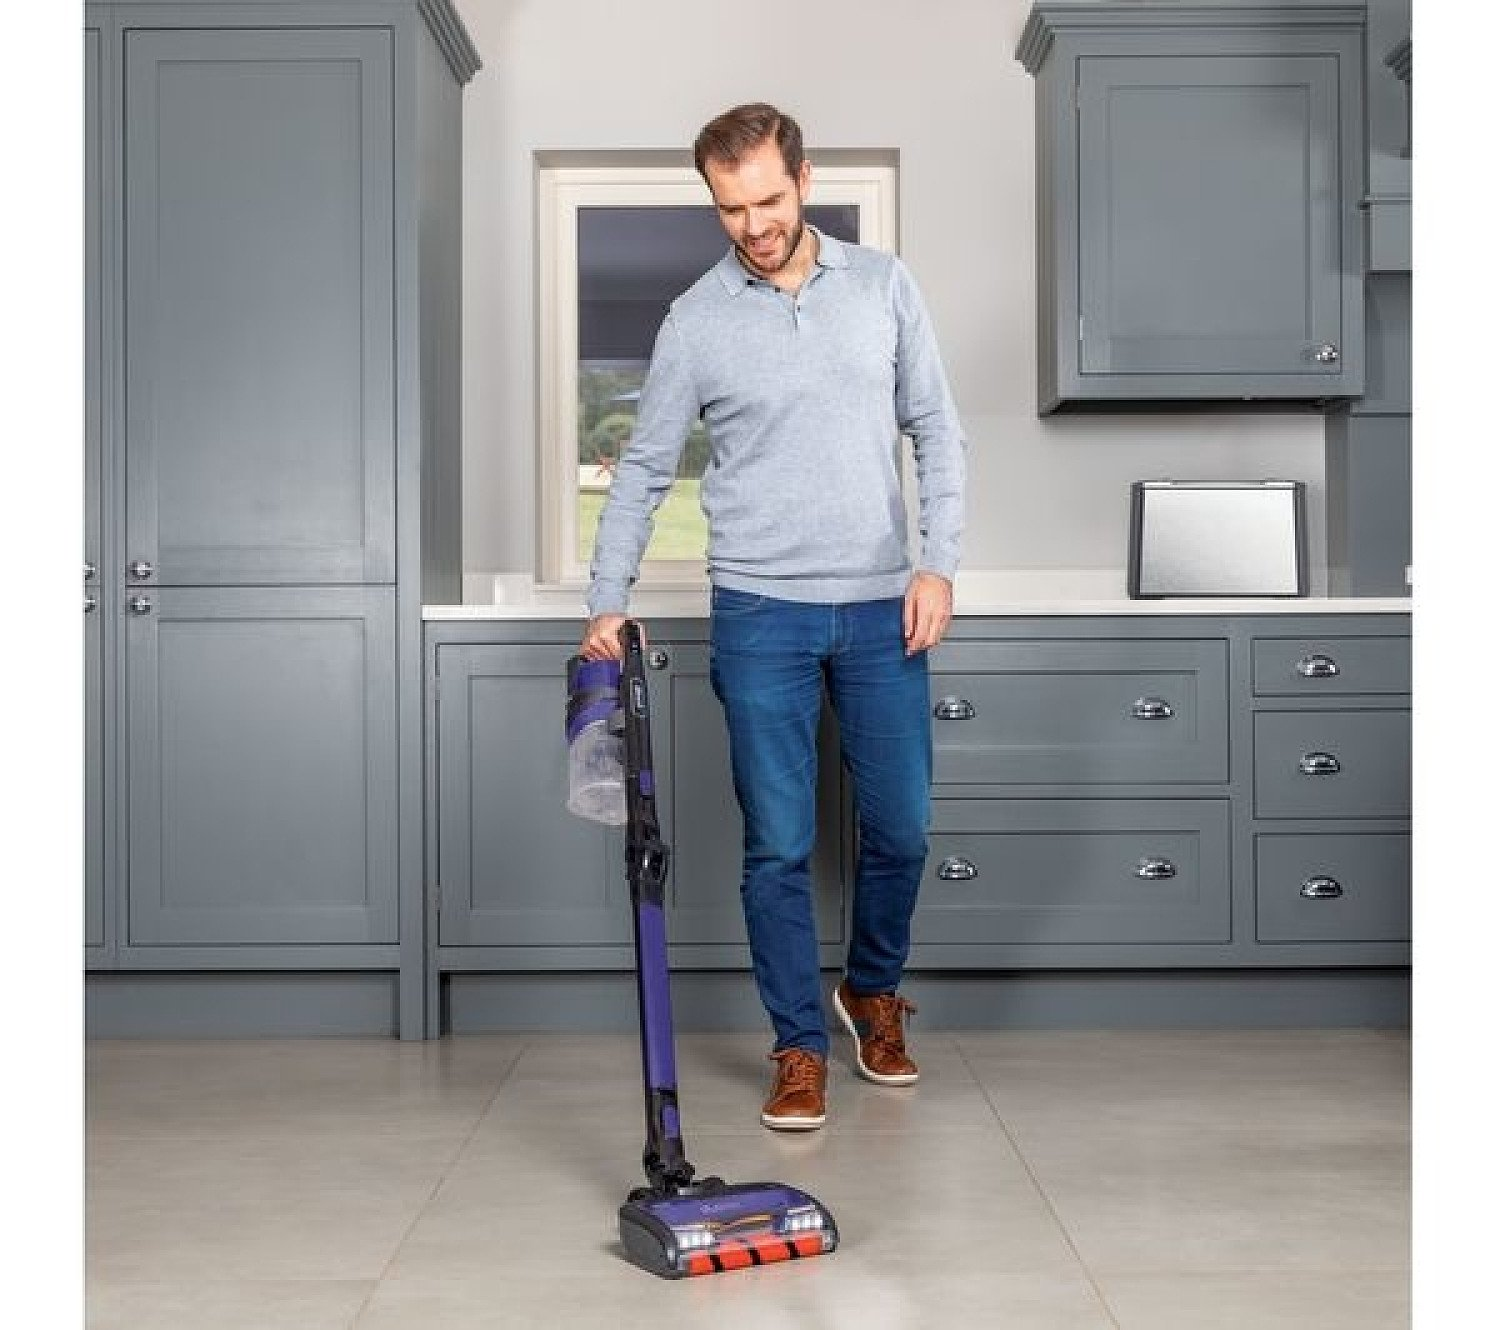 SAVE - Shark Lift-Away Upright Vacuum Cleaner NV602UK